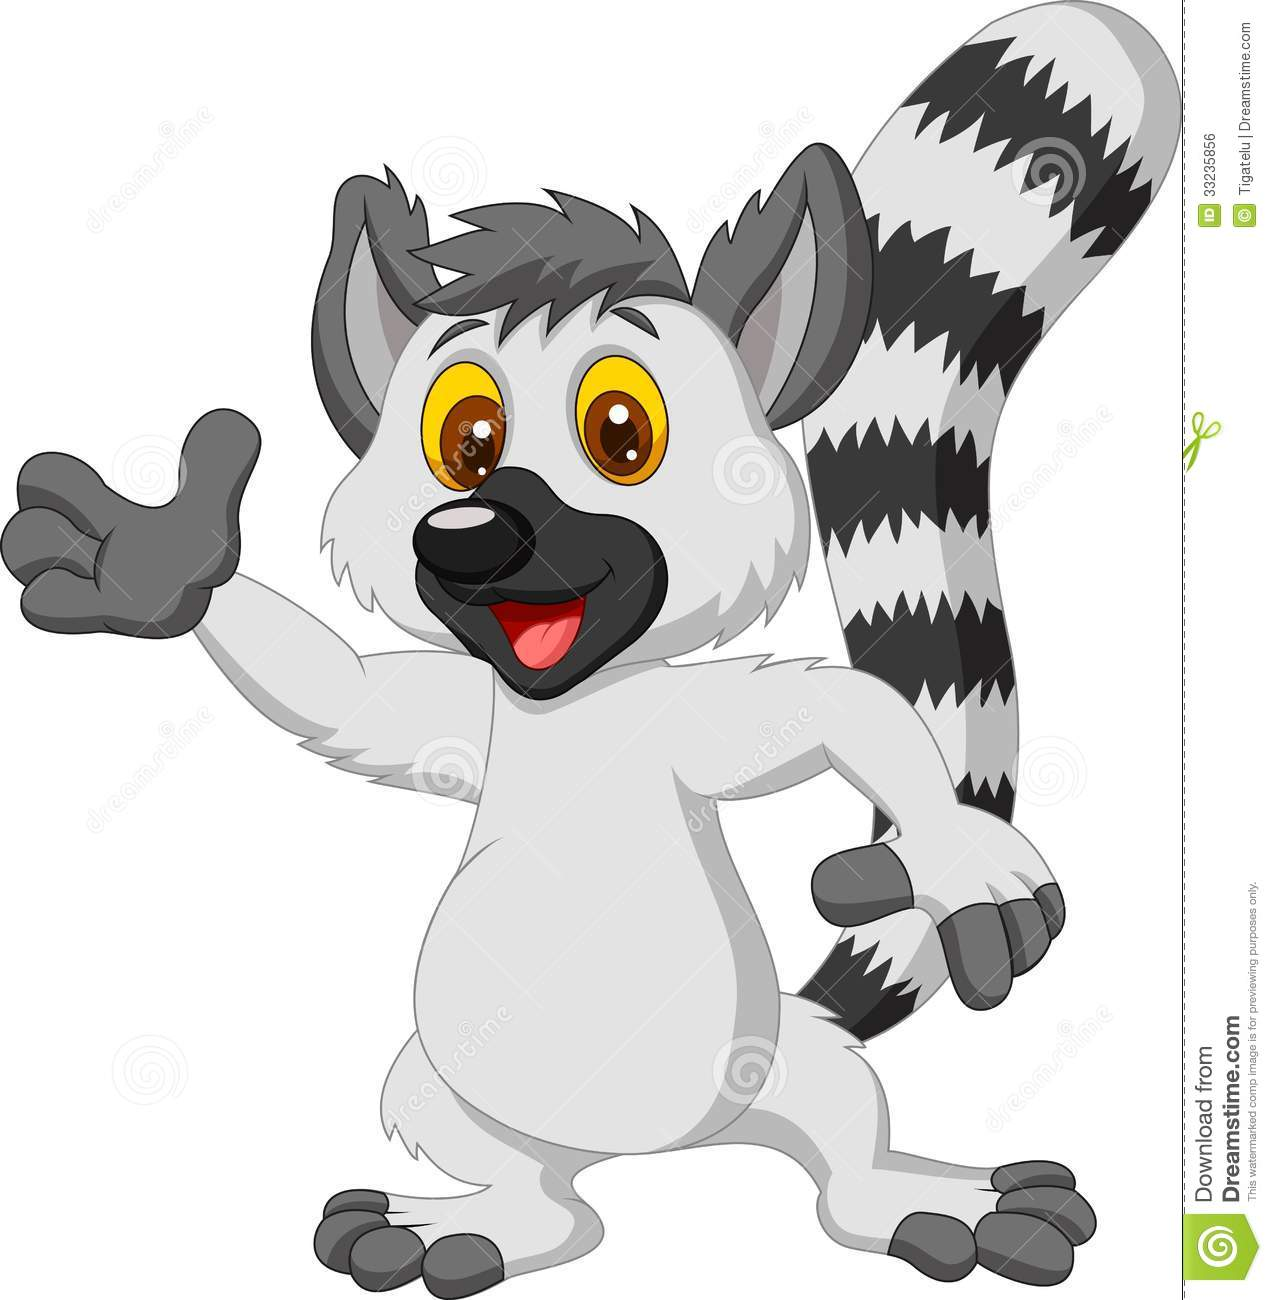 Lemur Stock Illustrations.